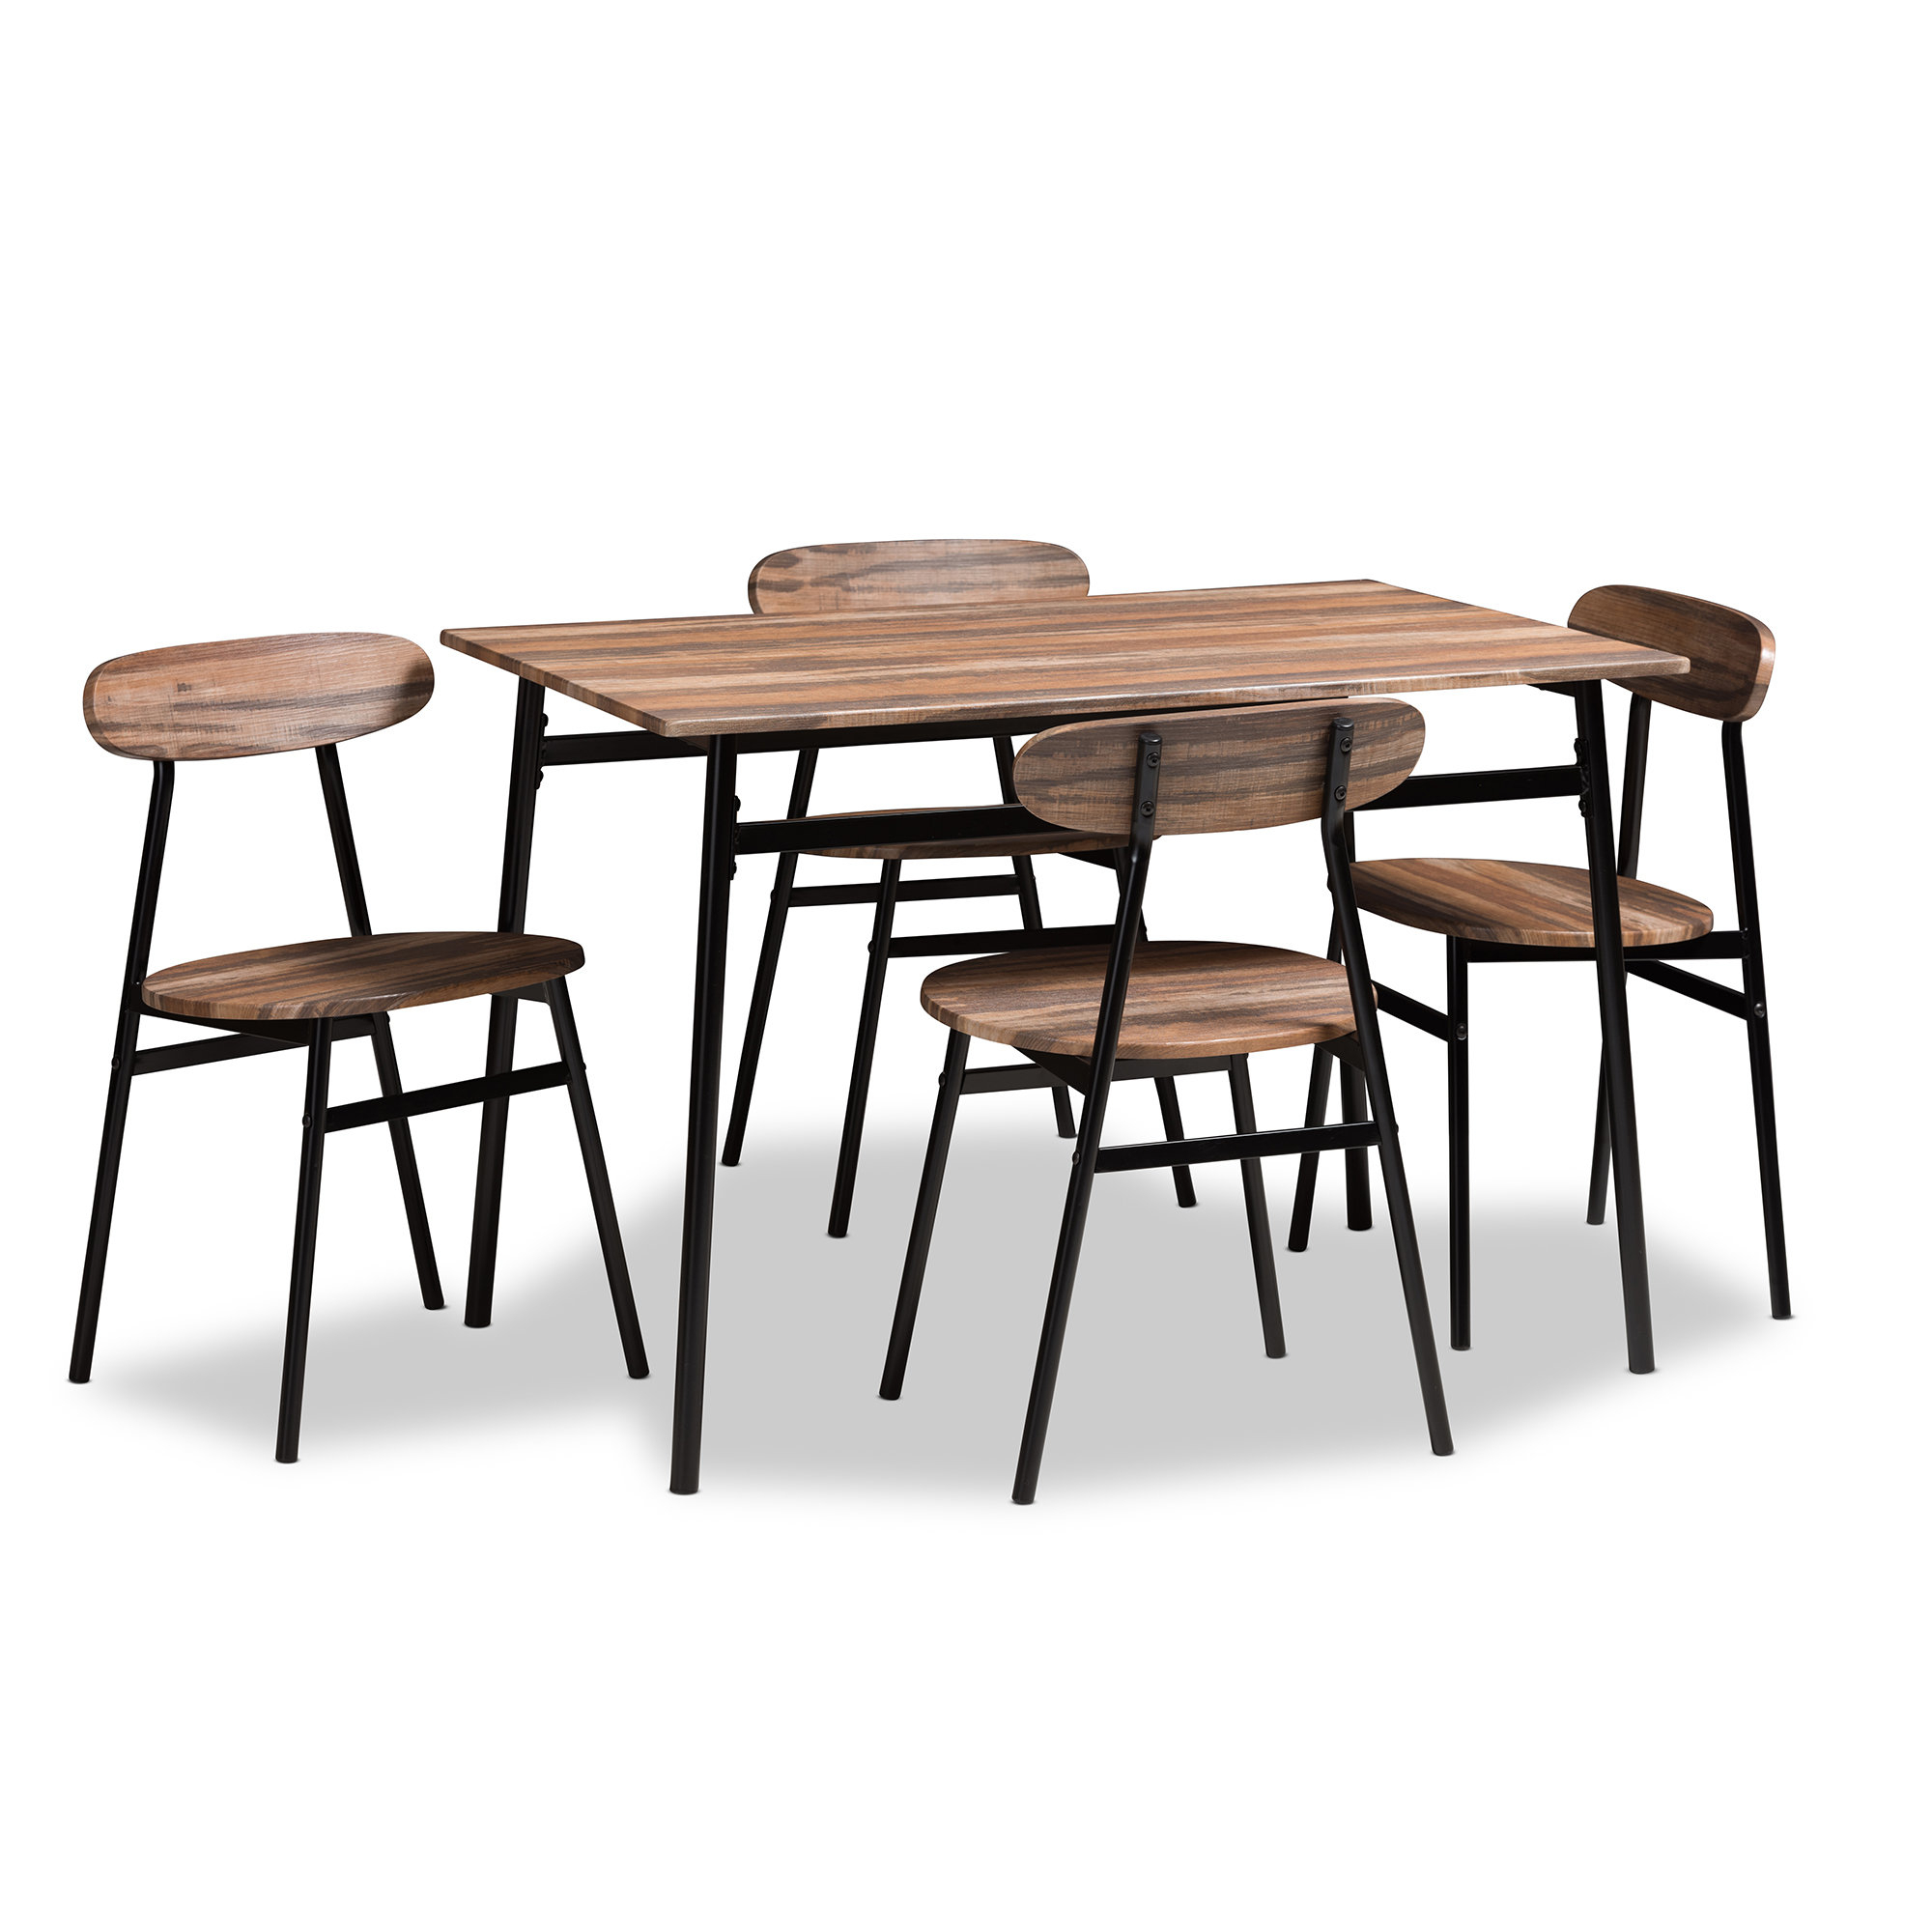 Mulvey 5 Piece Dining Sets Within Fashionable Union Rustic Telauges 5 Piece Dining Set & Reviews (View 9 of 25)